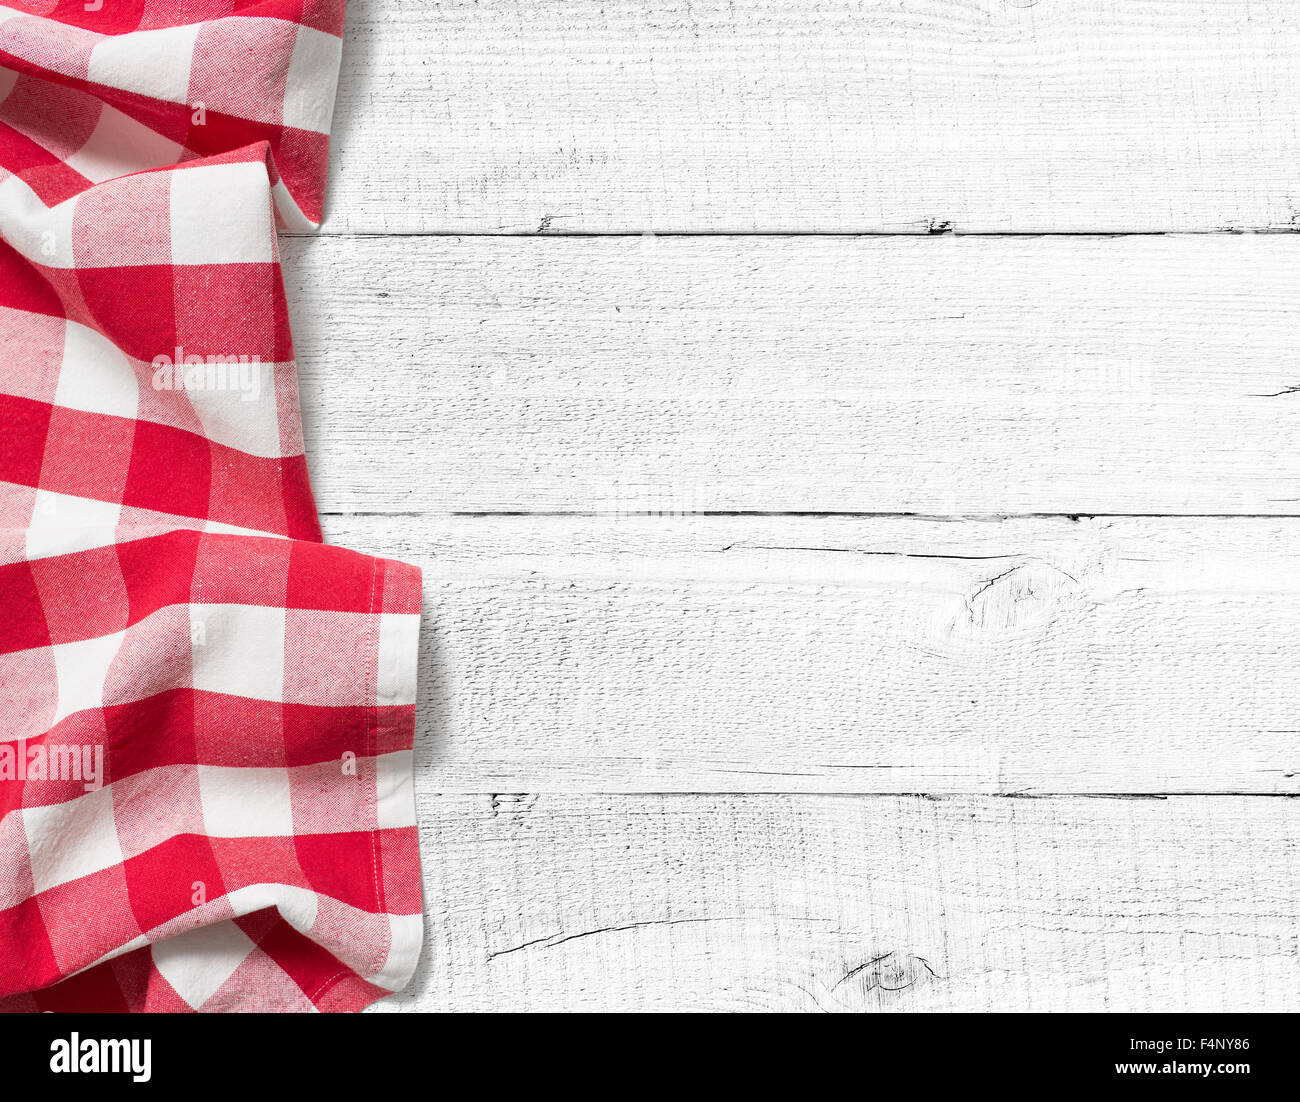 White wood table texture - Stock Photo Checked Picnic Tablecloth On White Wood Table Background